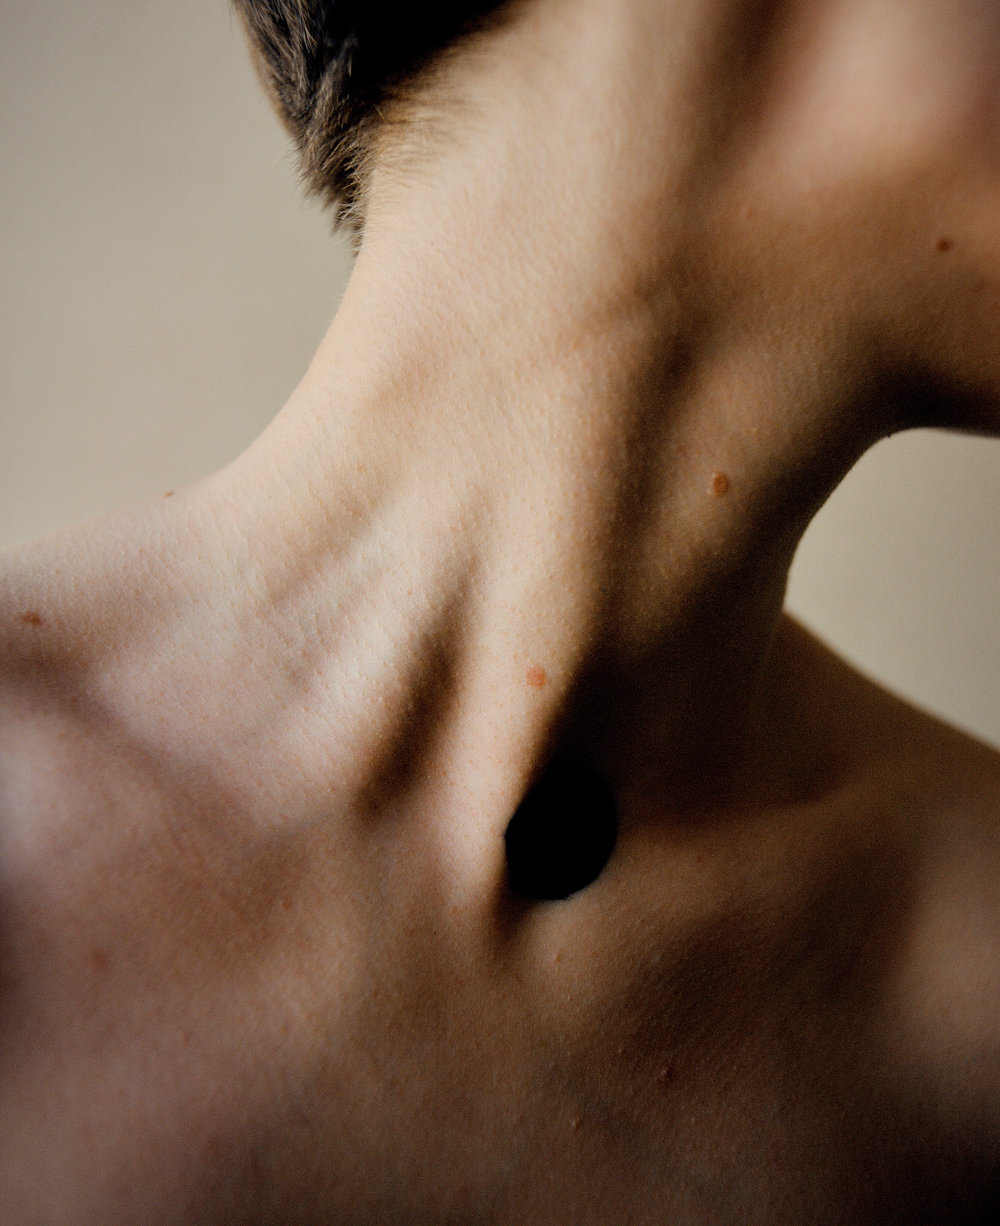 SKIN | An exploration of the surface we call home